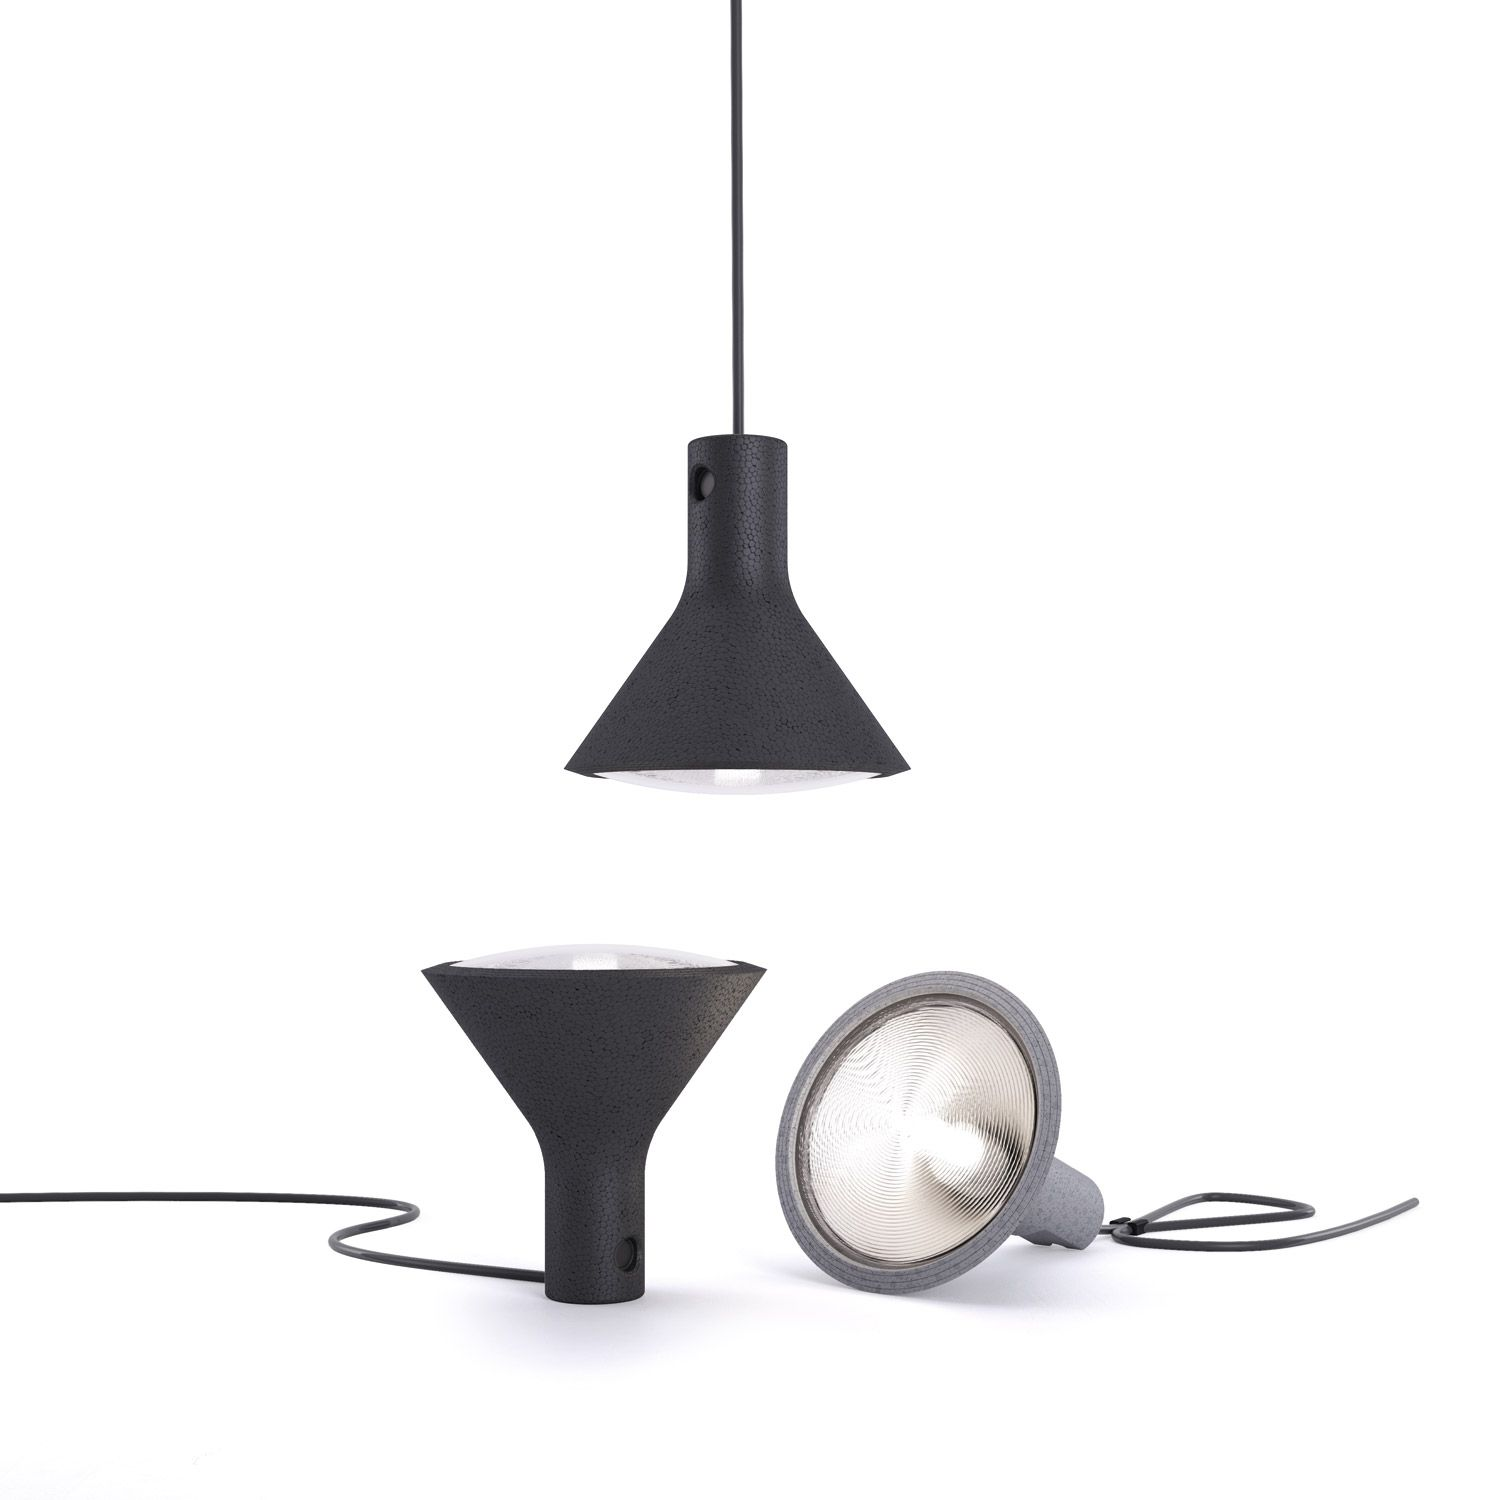 Yupik (lighting): Portable lamp. Body in polypropylene foam, available in pale grey and black. Diffuser in clear polycarbonate. Fitted with 5-metre black power cable, allowing the lamp to be moved and placed on a surface with the light source directed upwards, laid on one side or even hung up, thanks to a hook that can be used for holding the cable. (designer: Form us with love | 2013) - More @ www.fontanaarte.com #fontanaarte #light #lamp